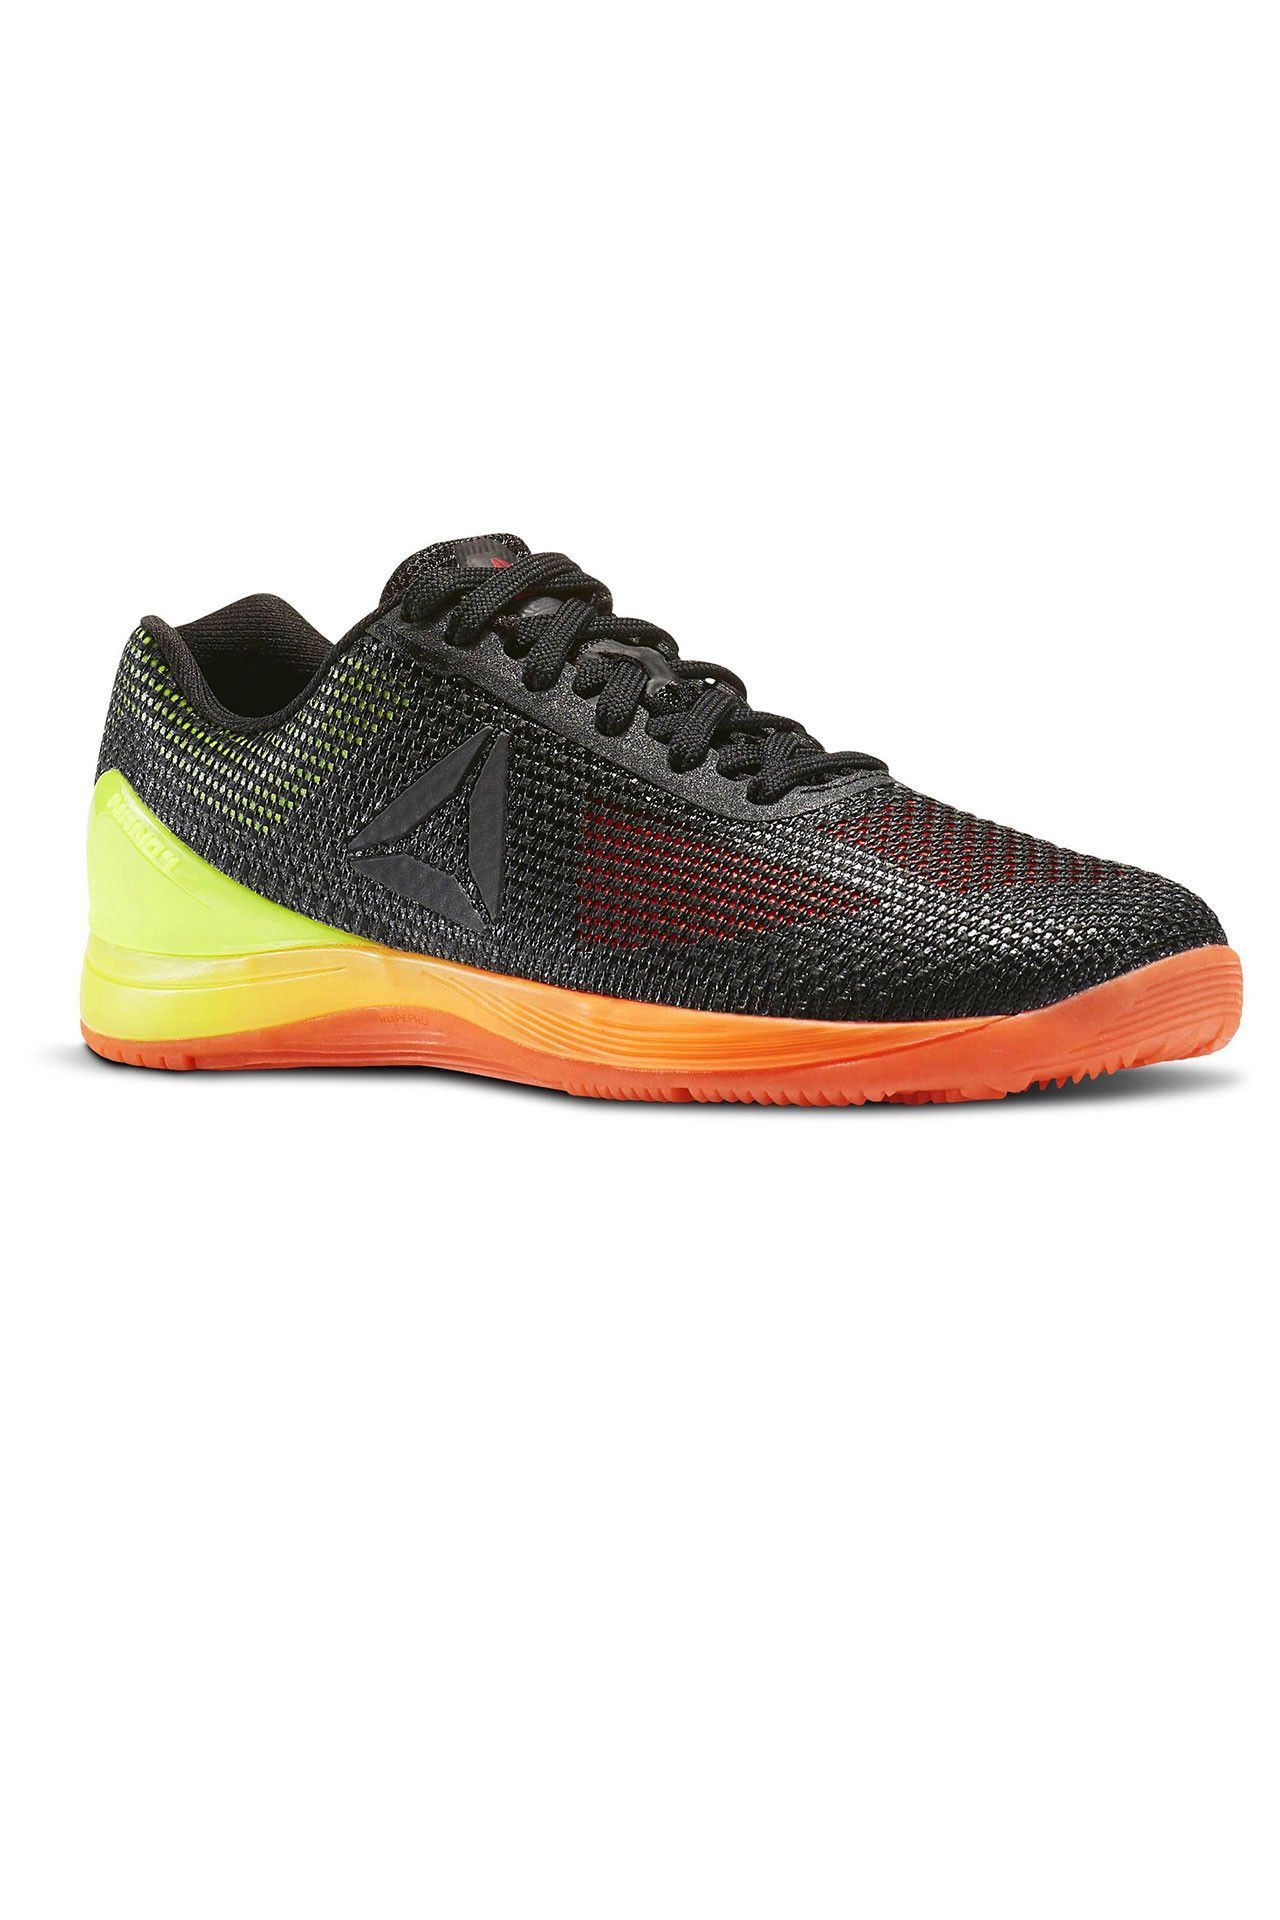 39cbe1d72ee Make every nanosecond count with the Reebok CrossFit Nano 7 - the world s  leading CrossFit shoe. Get a OFF Reebok voucher code with SportStylist.